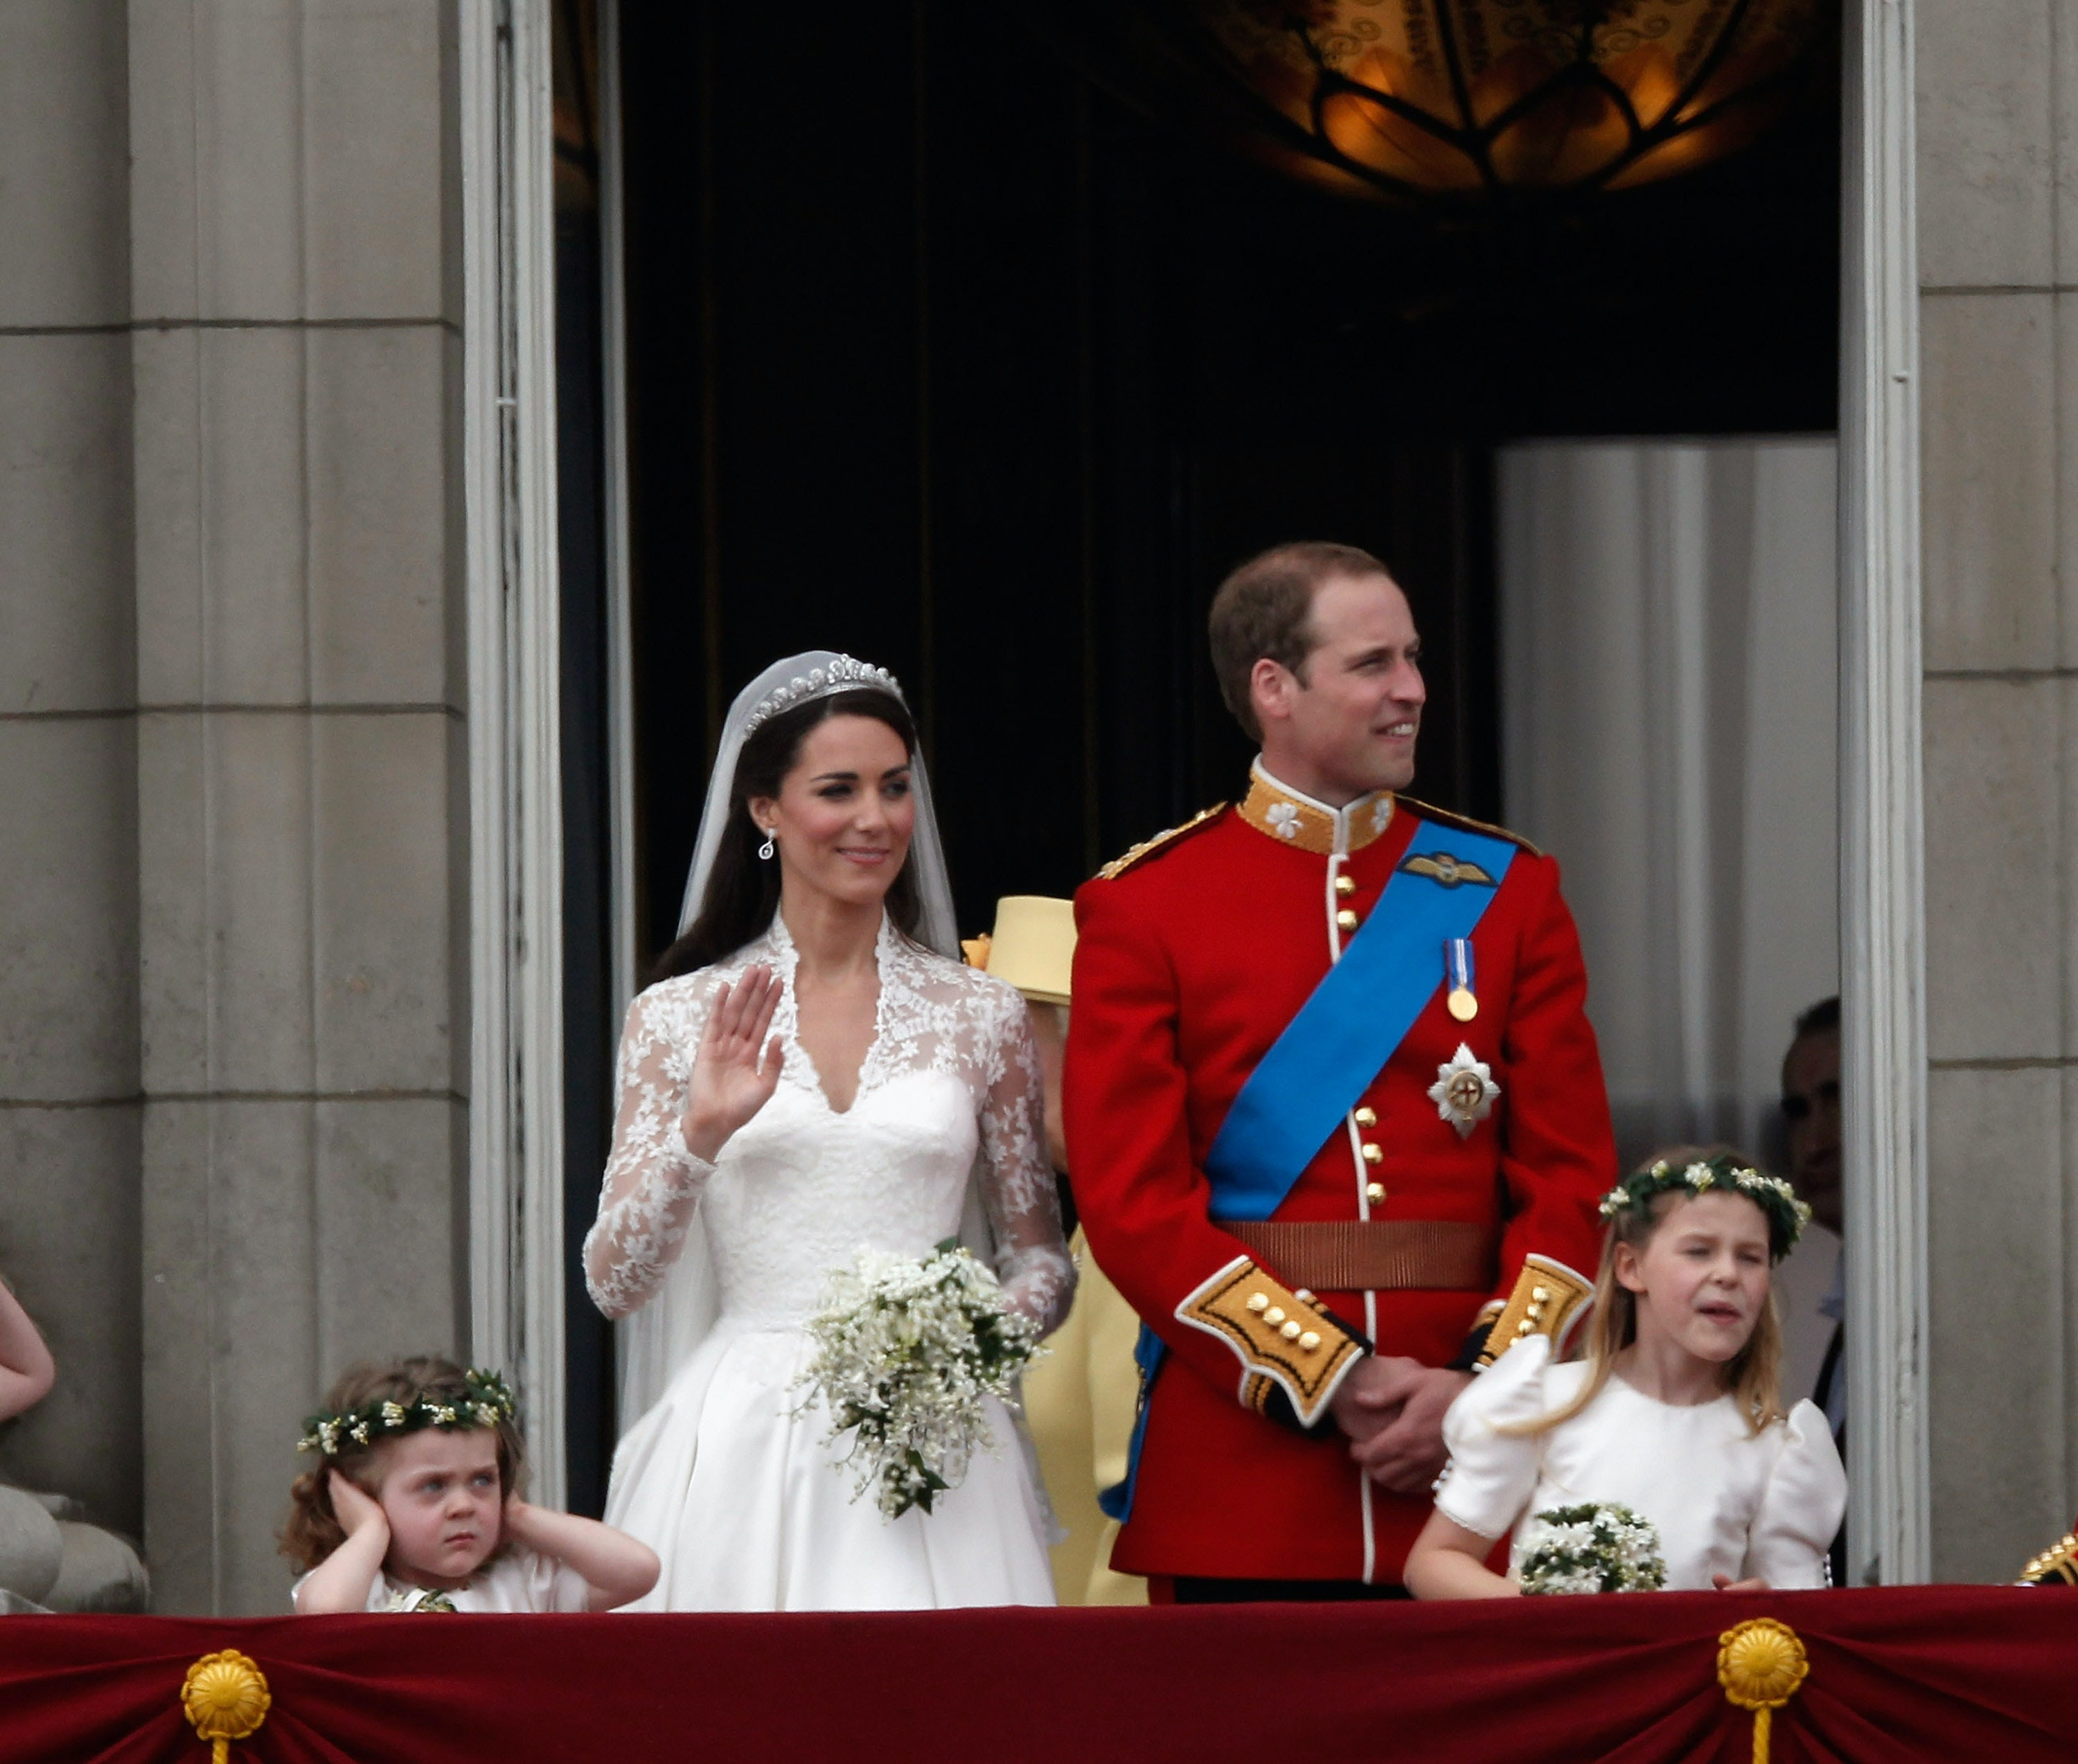 Royal Wedding Time.The Weirdest Royal Wedding Dress Code Rules Of All Time Include So